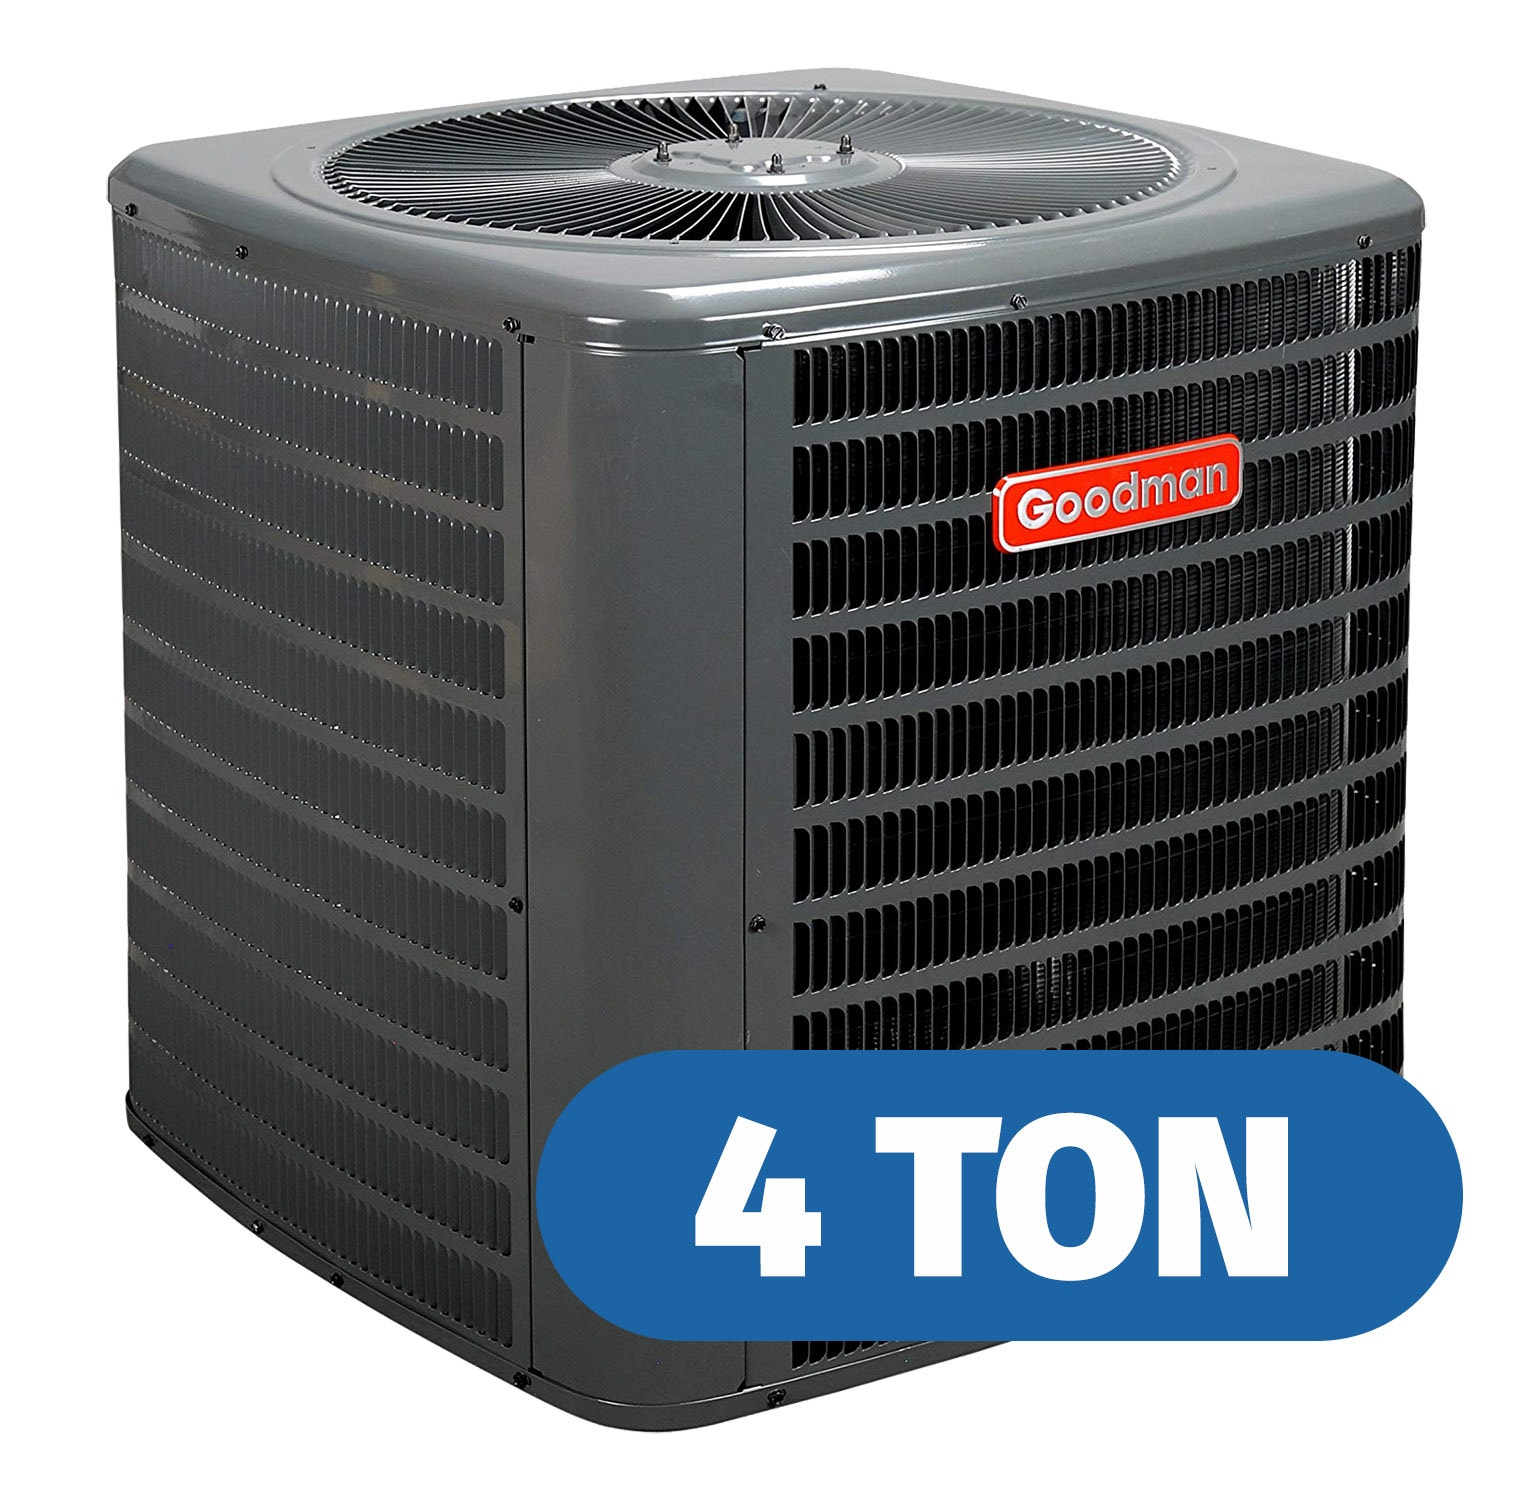 4 Ton Air Conditioners